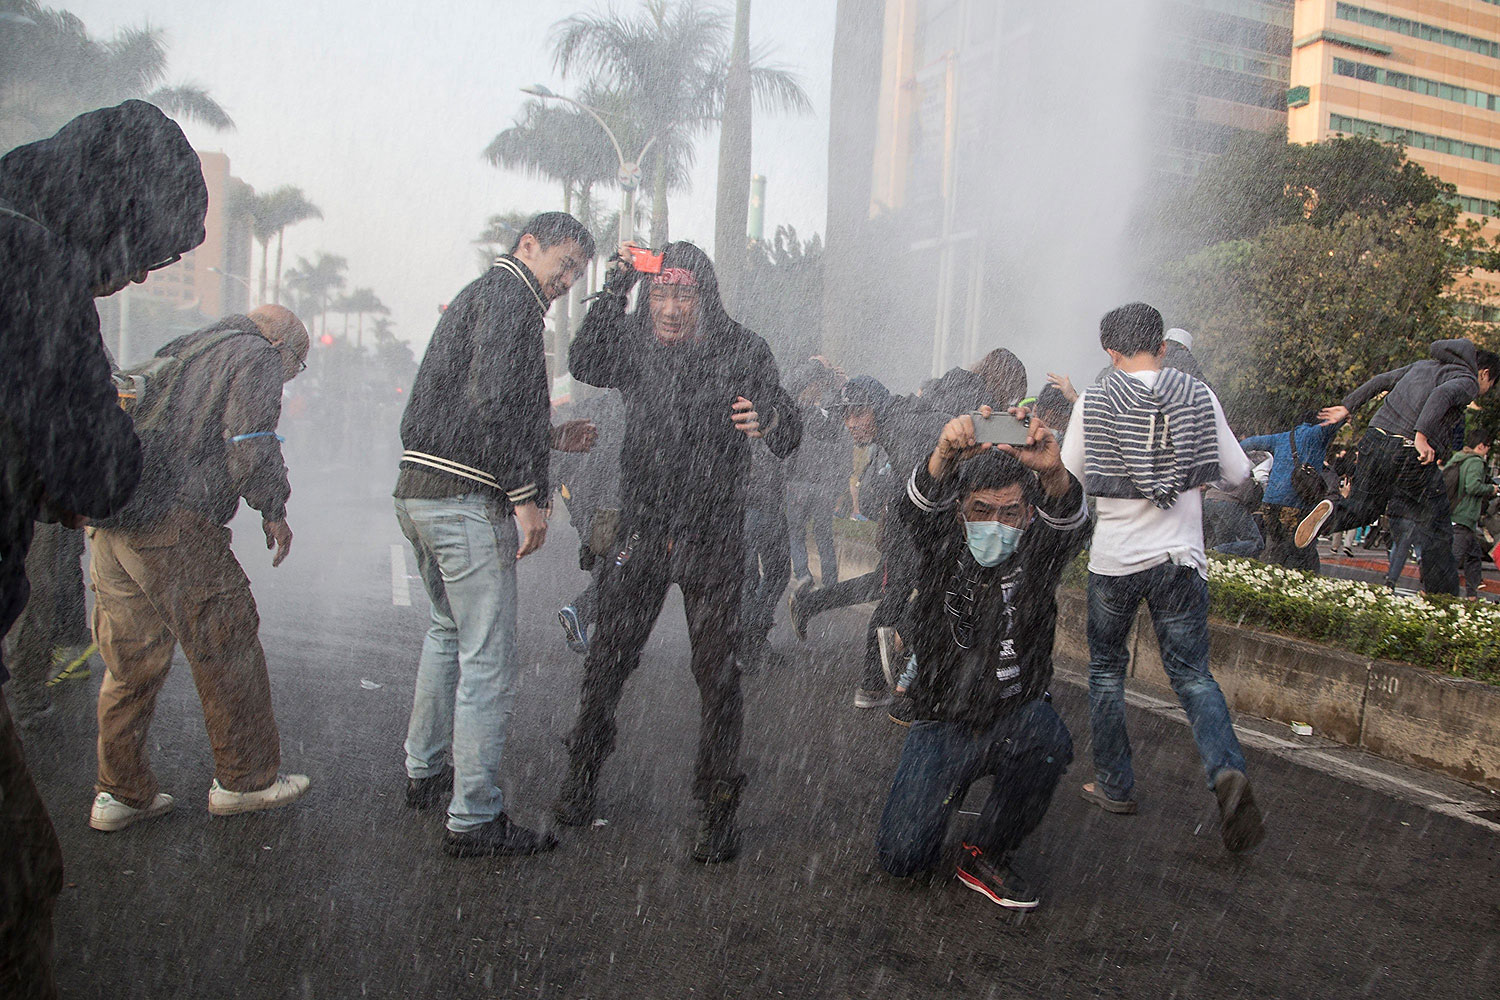 Riot police use water cannons during a clash with student protesters outside the Executive Yuan, a branch of government in charge of administrative affairs for all of Taiwan on March 24, 2014 in Taipei, Taiwan.